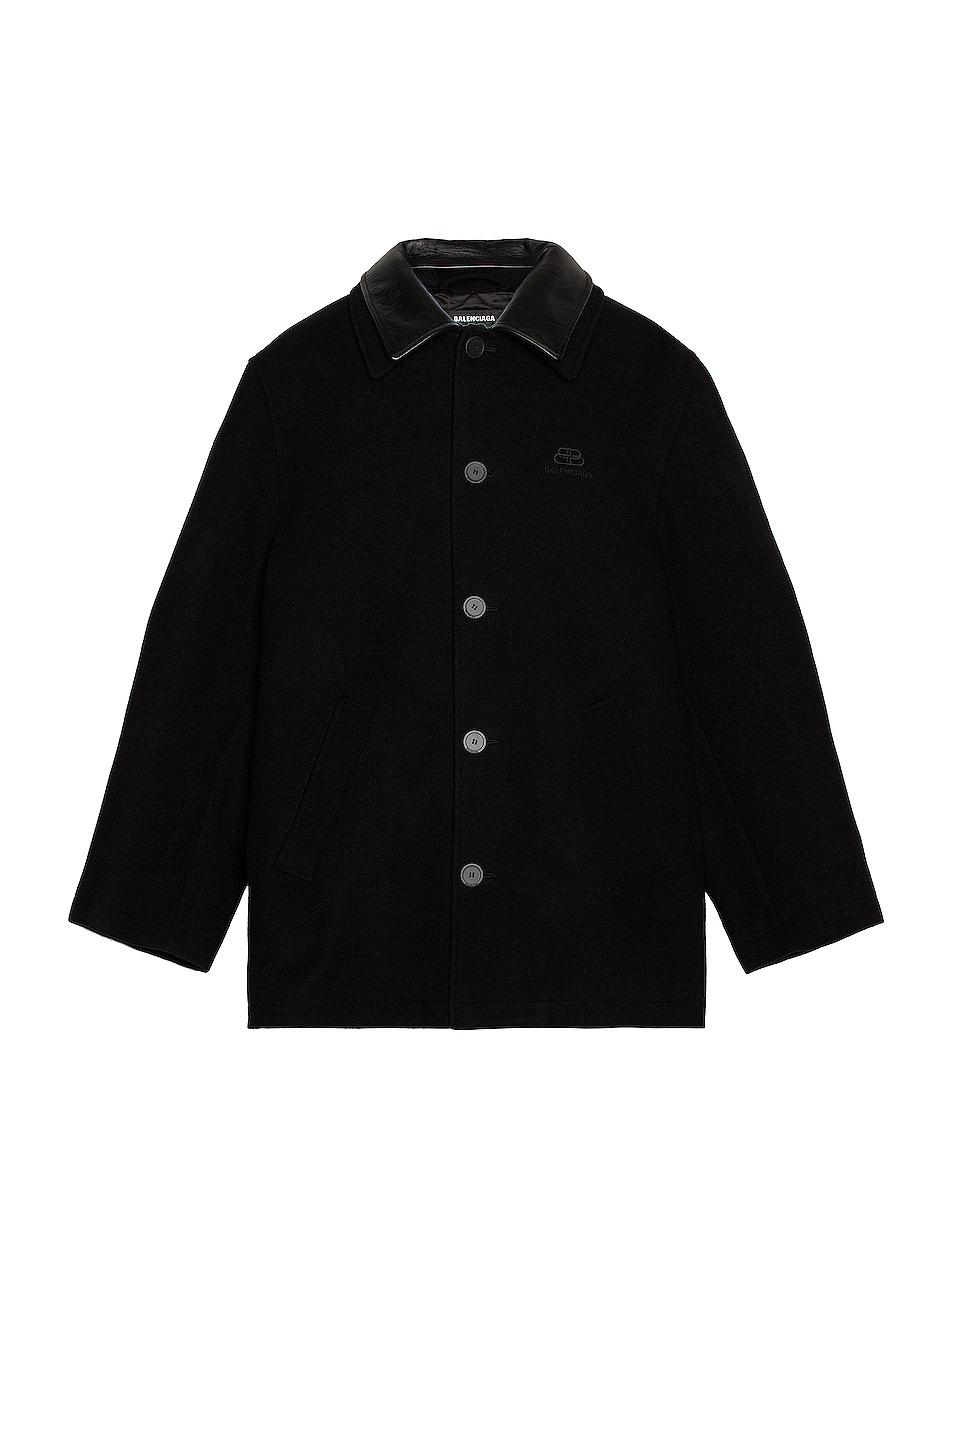 Image 1 of Balenciaga Double Collar Jacket in Black